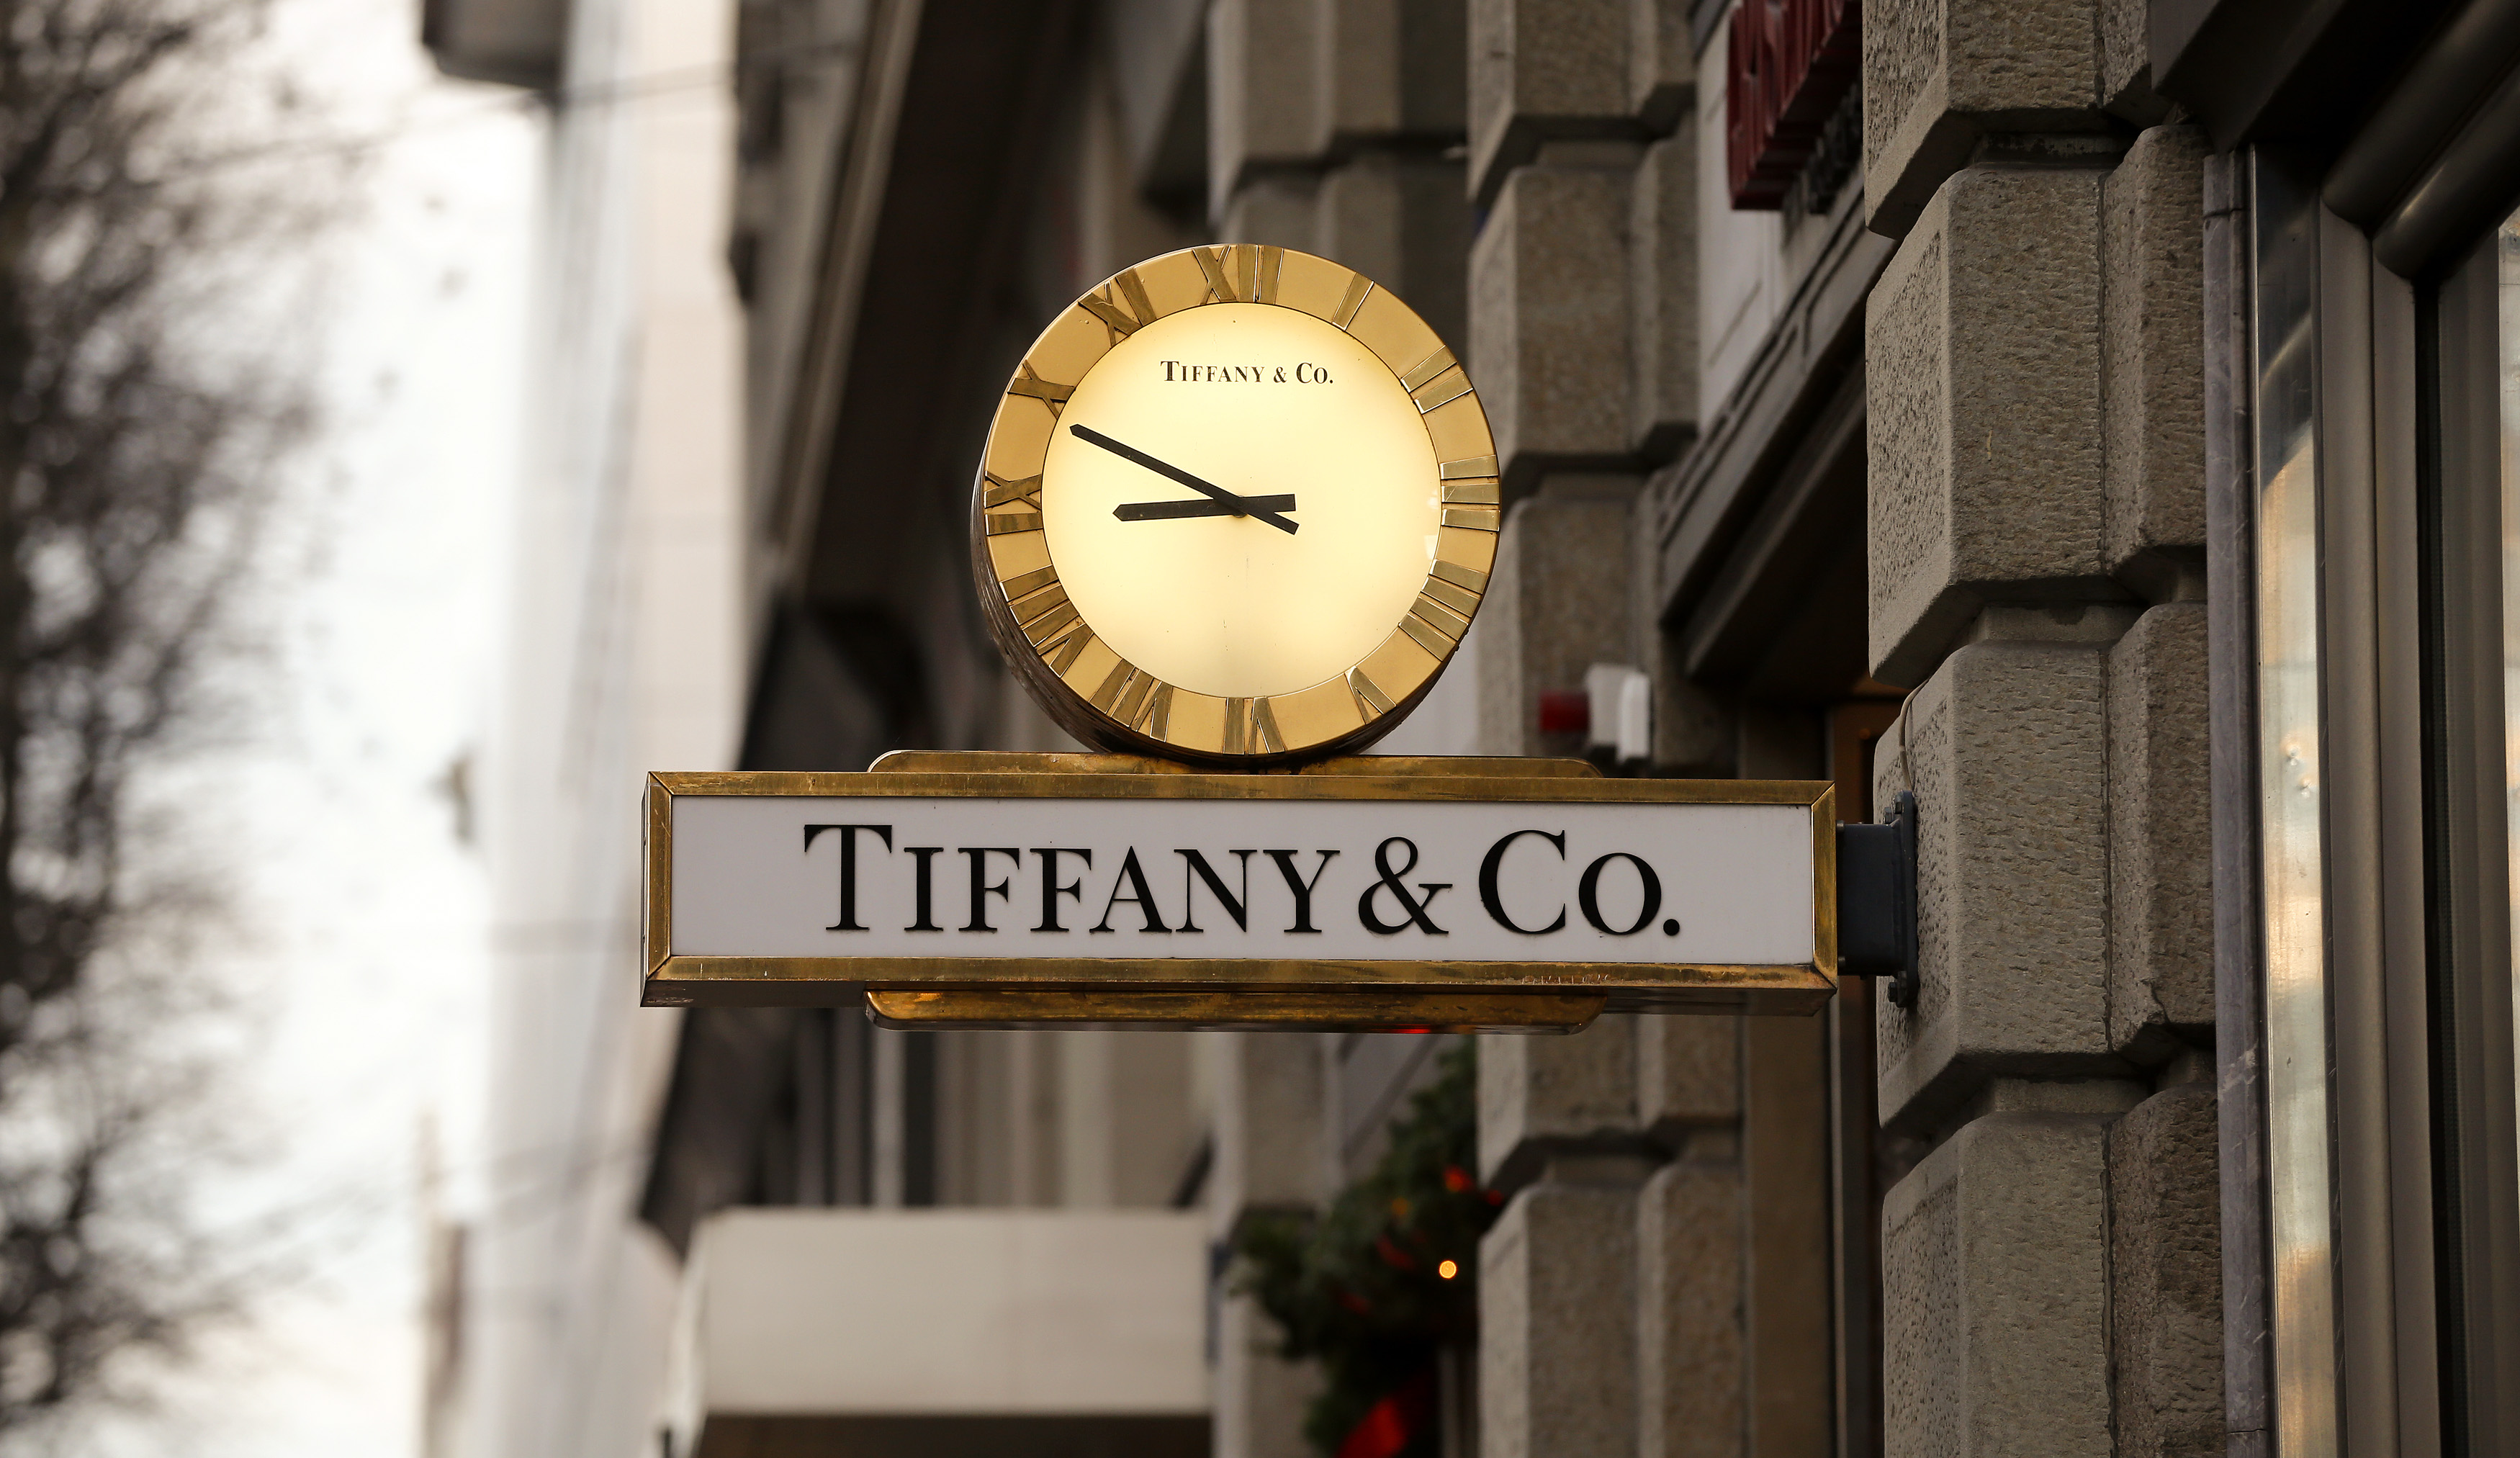 Tiffany's same-store sales beat estimates